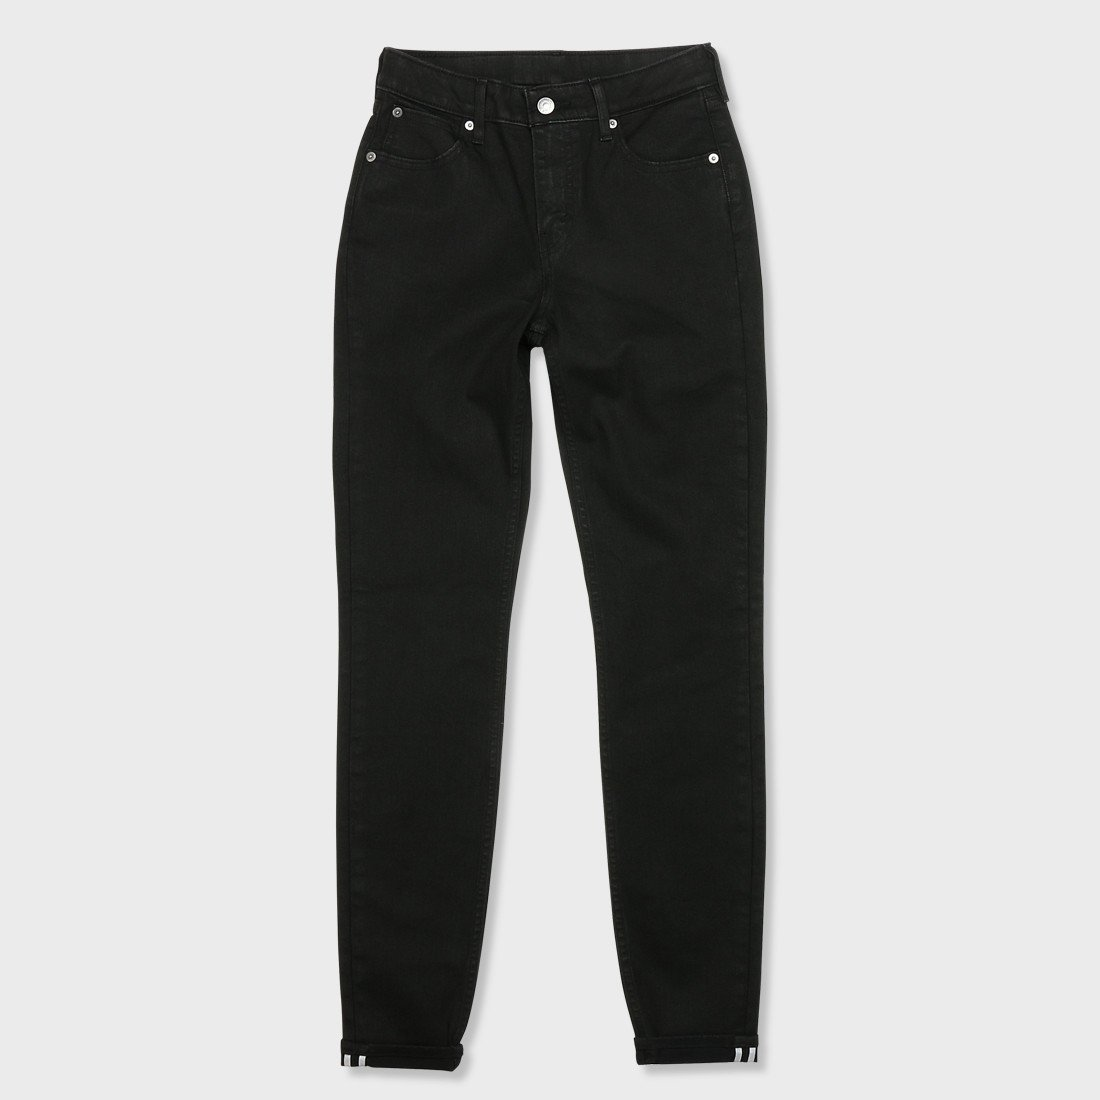 Levis Commuter 721 High Skinny Black